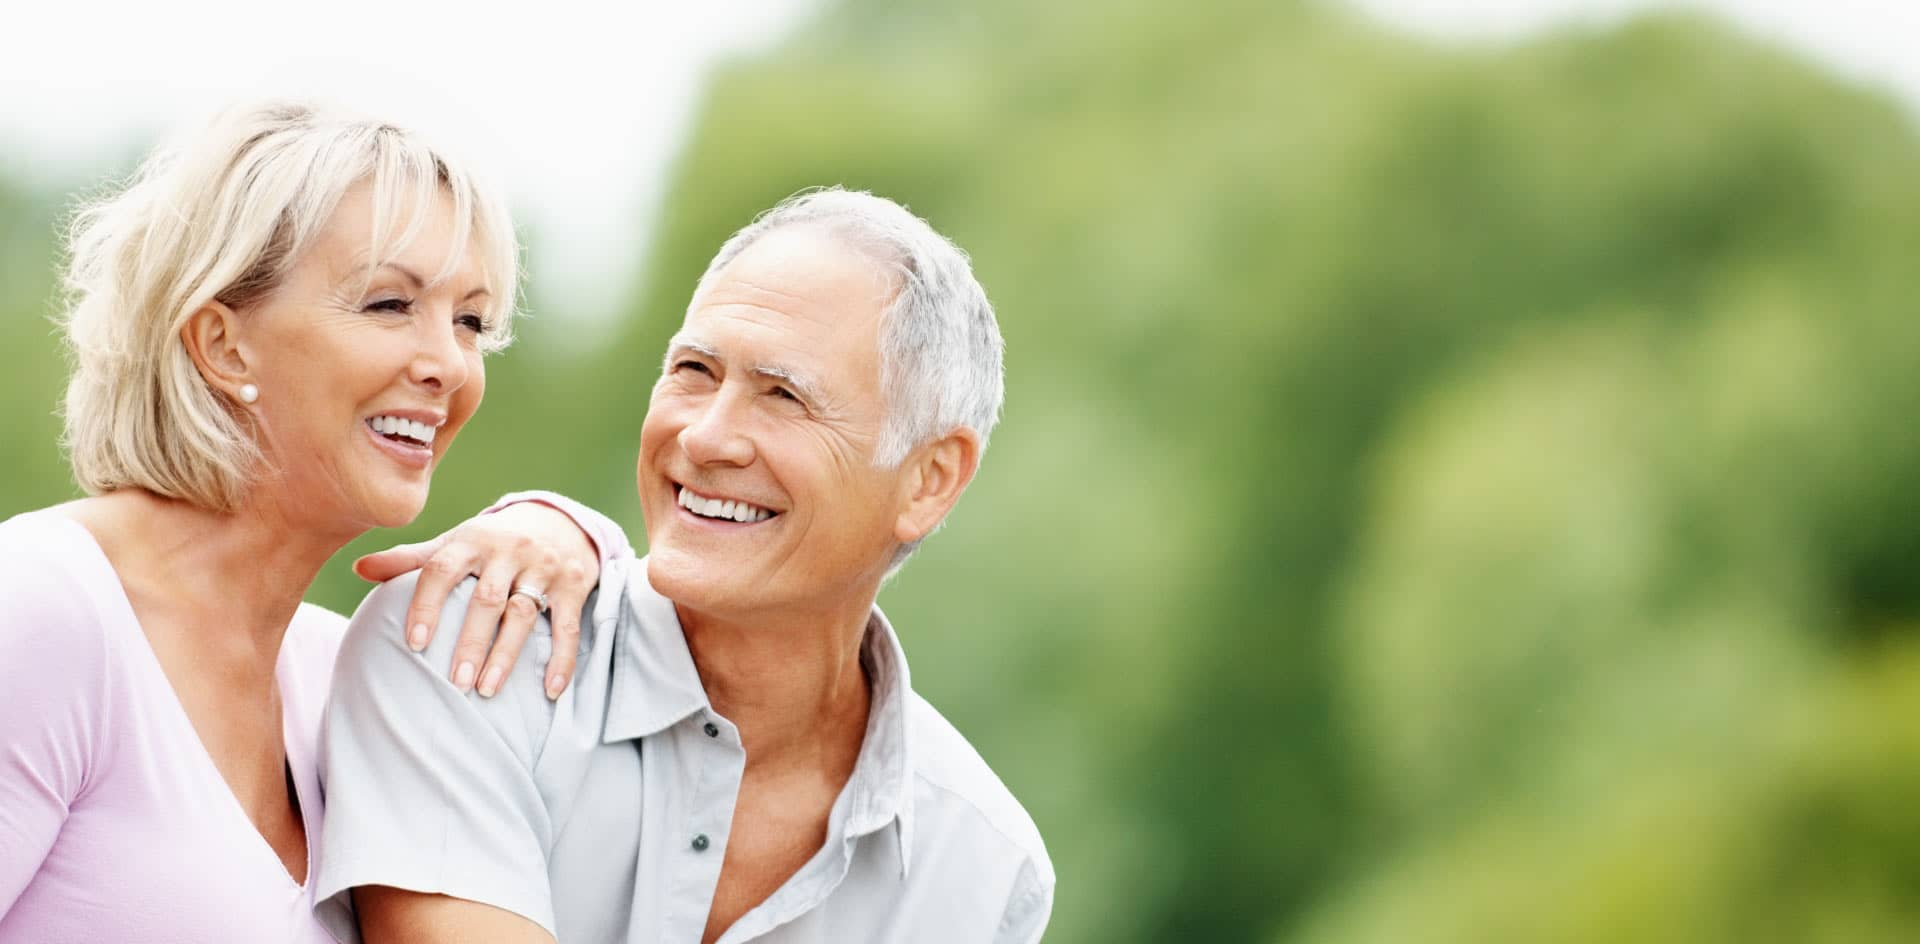 Retired couple enjoying spending time together